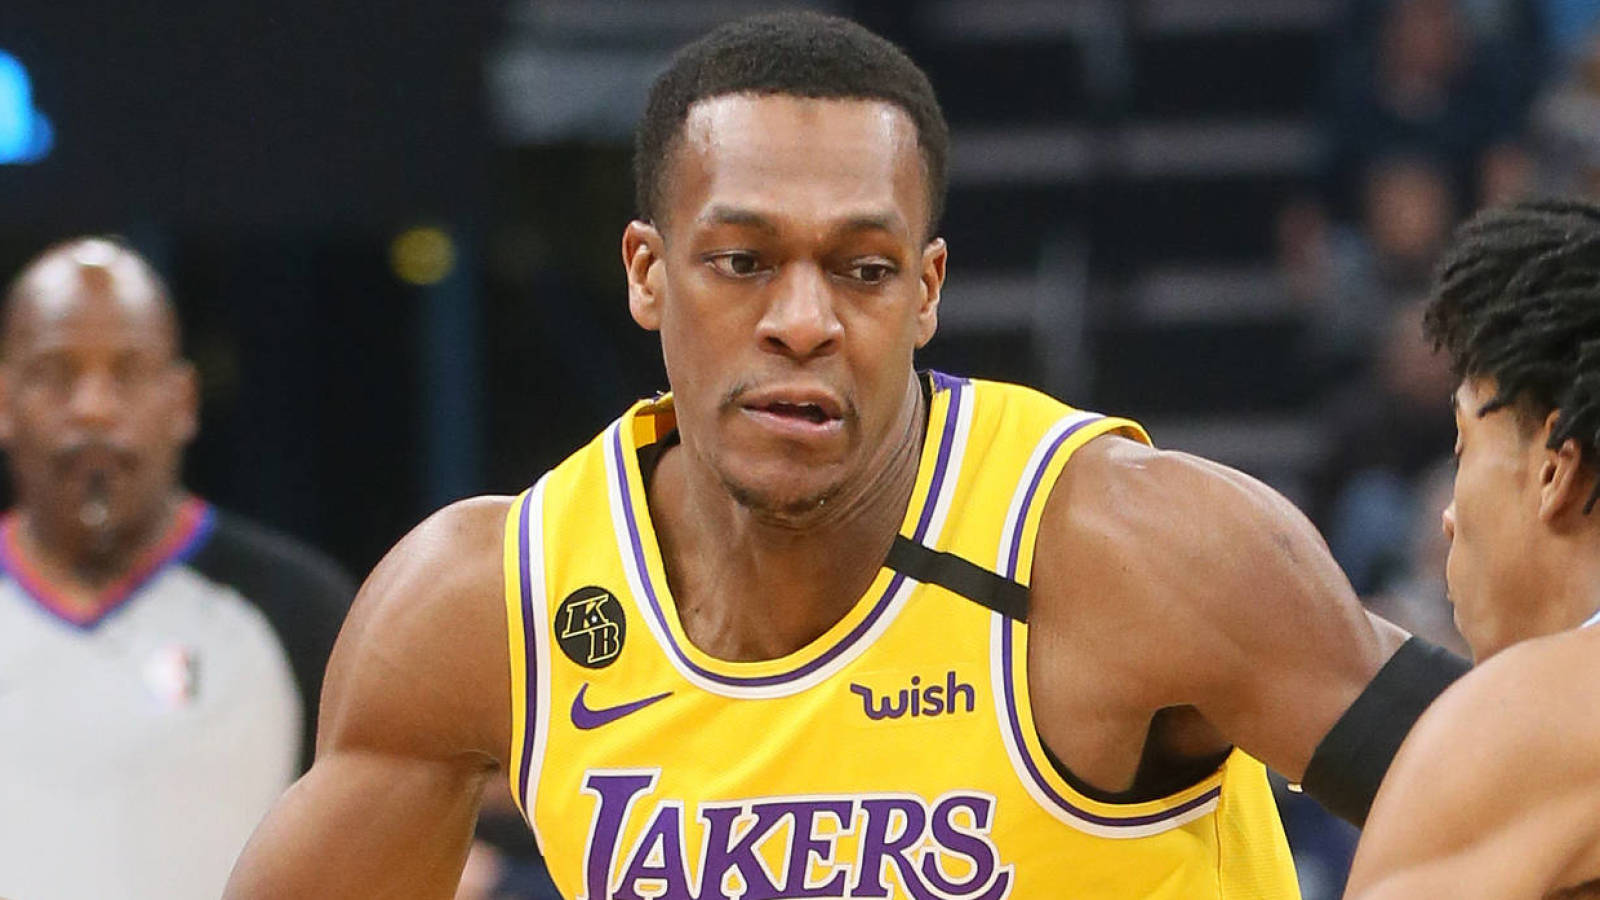 Rajon Rondo not too thrilled about his hotel accommodations in Orlando